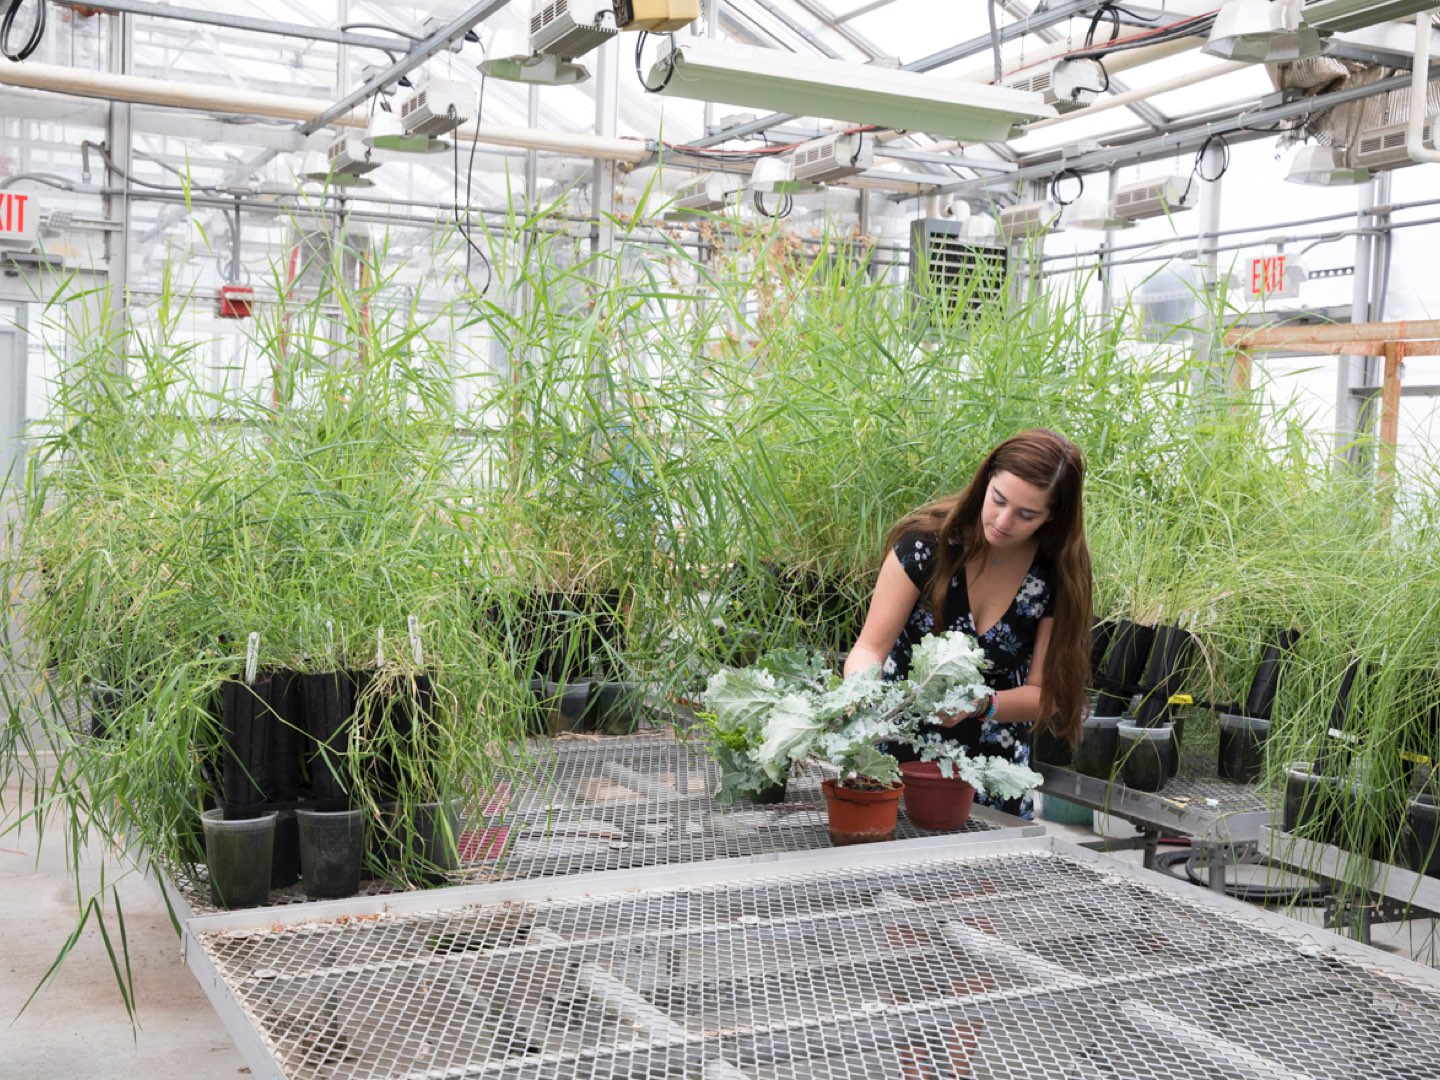 Giannina Guzman Checks Plants In The Greenhouse On Villanovau0027s Campus.